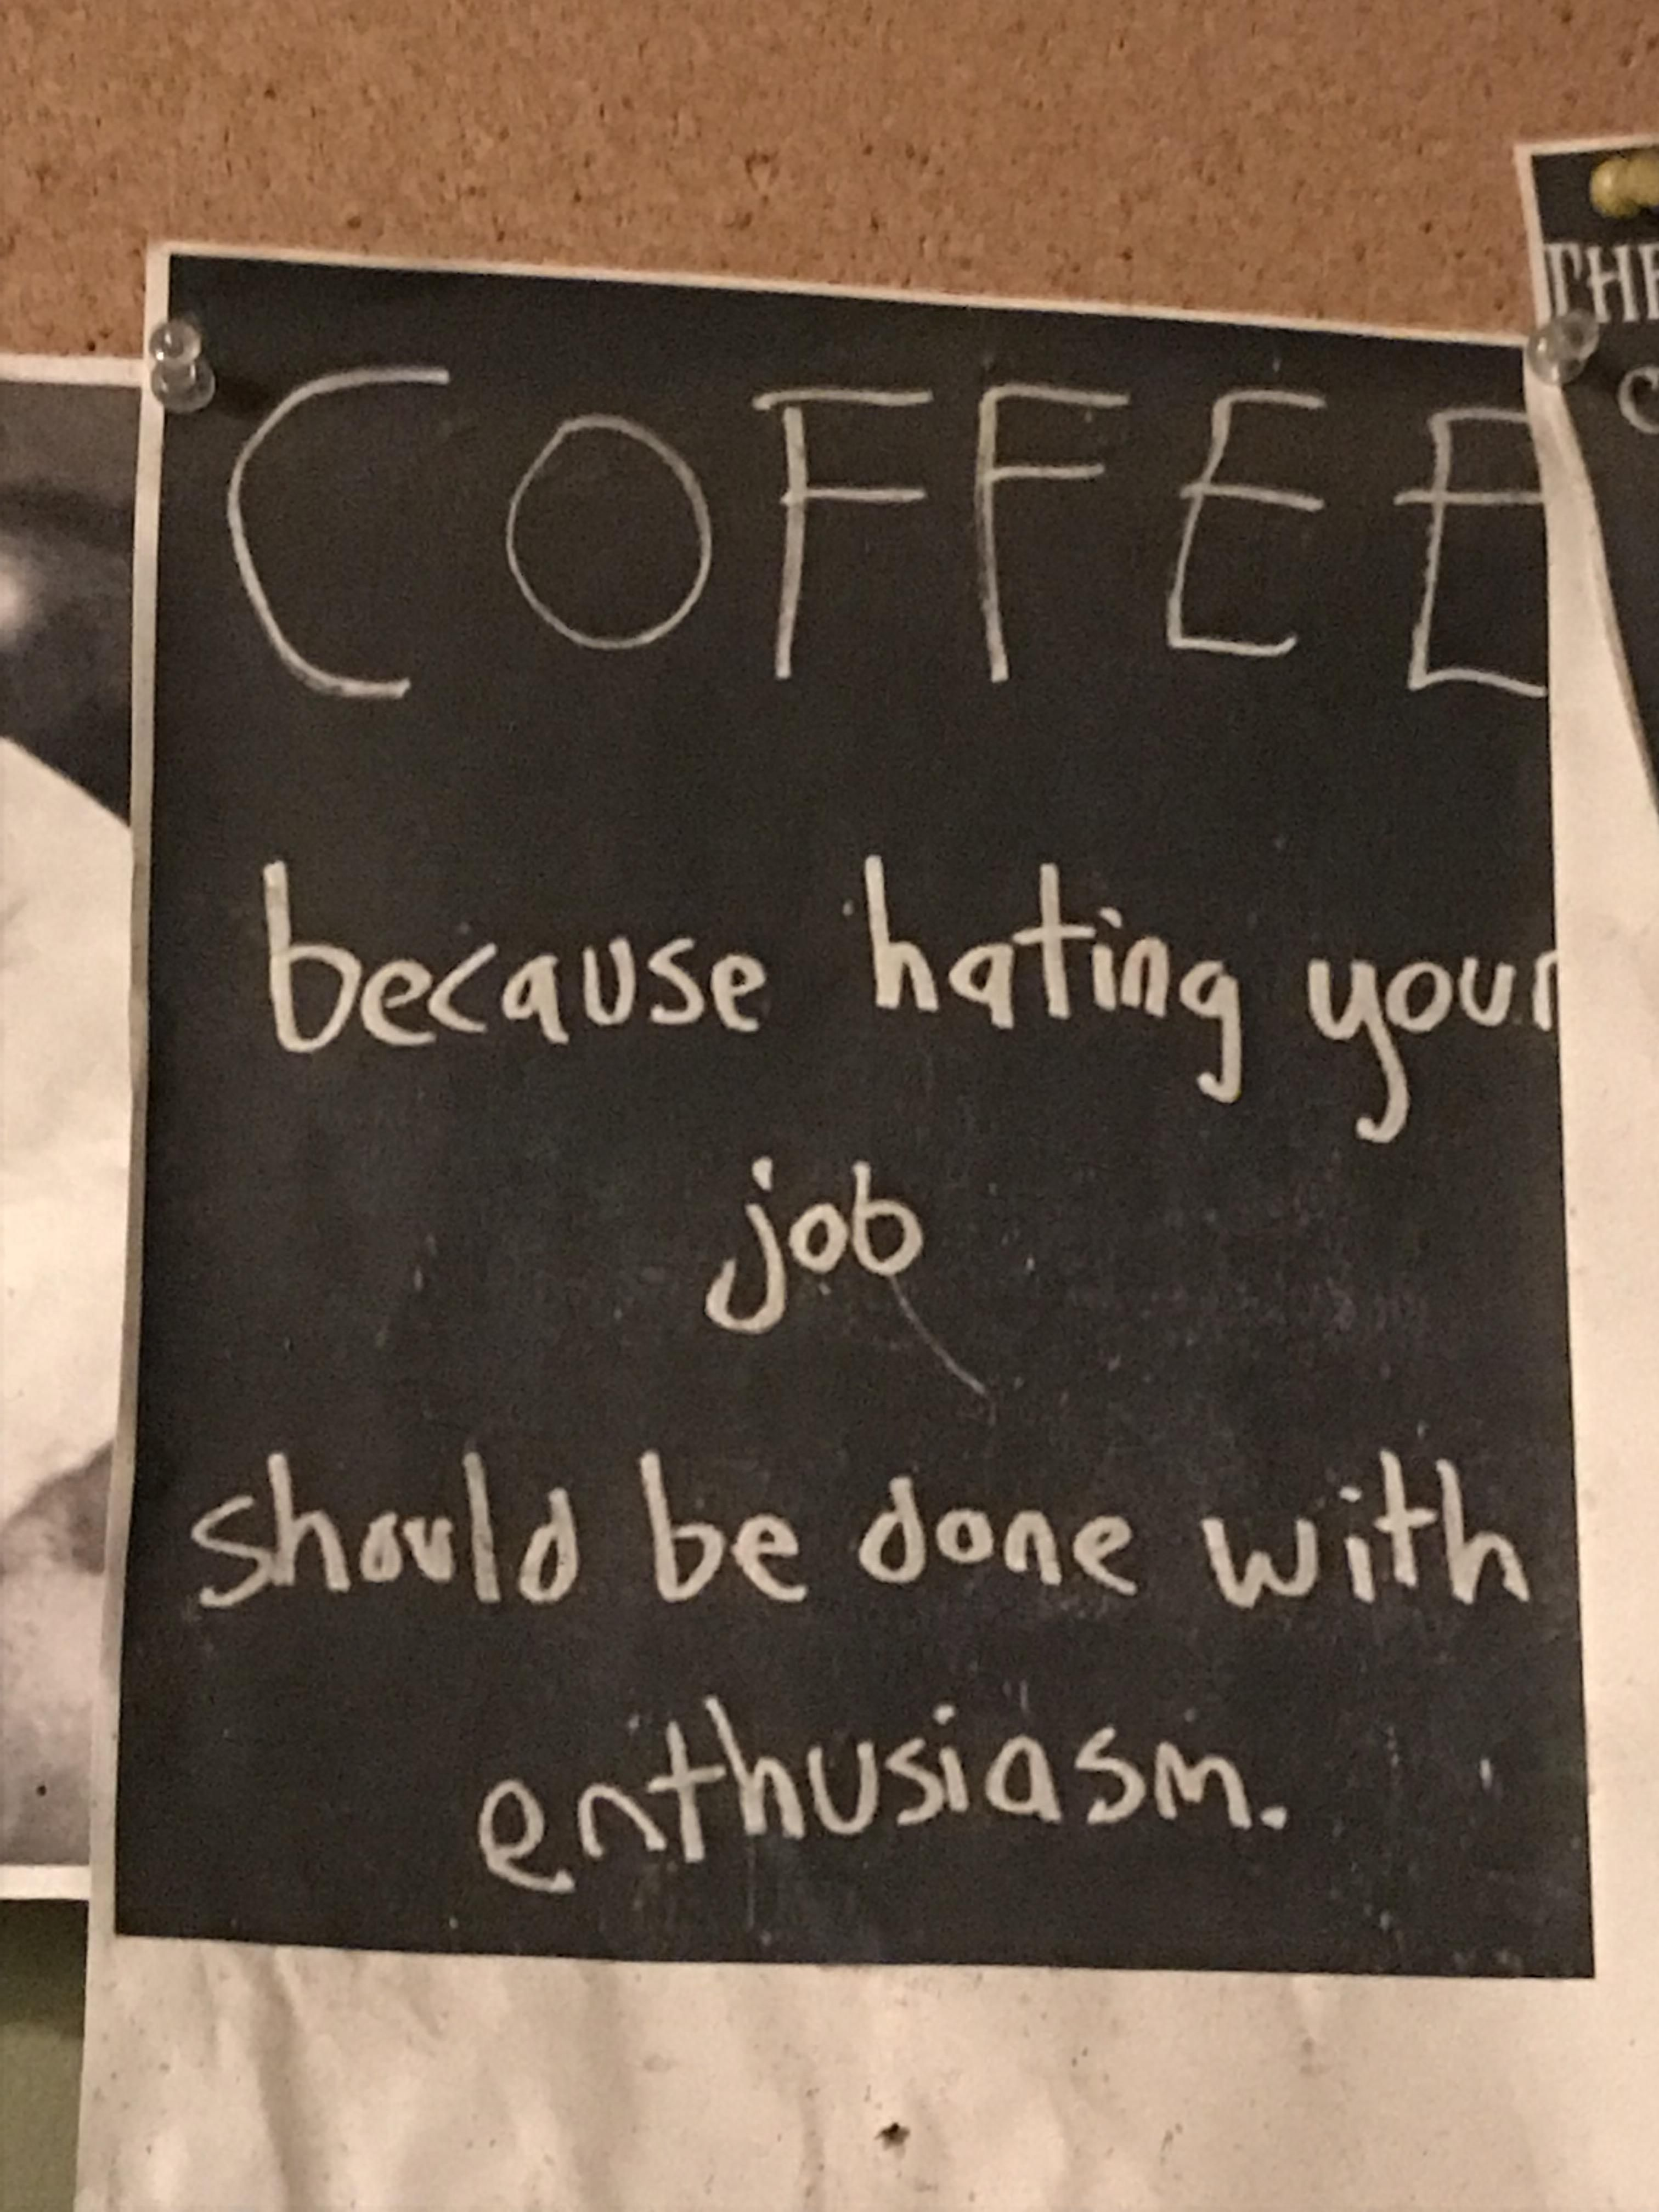 True statement I a local coffee shop